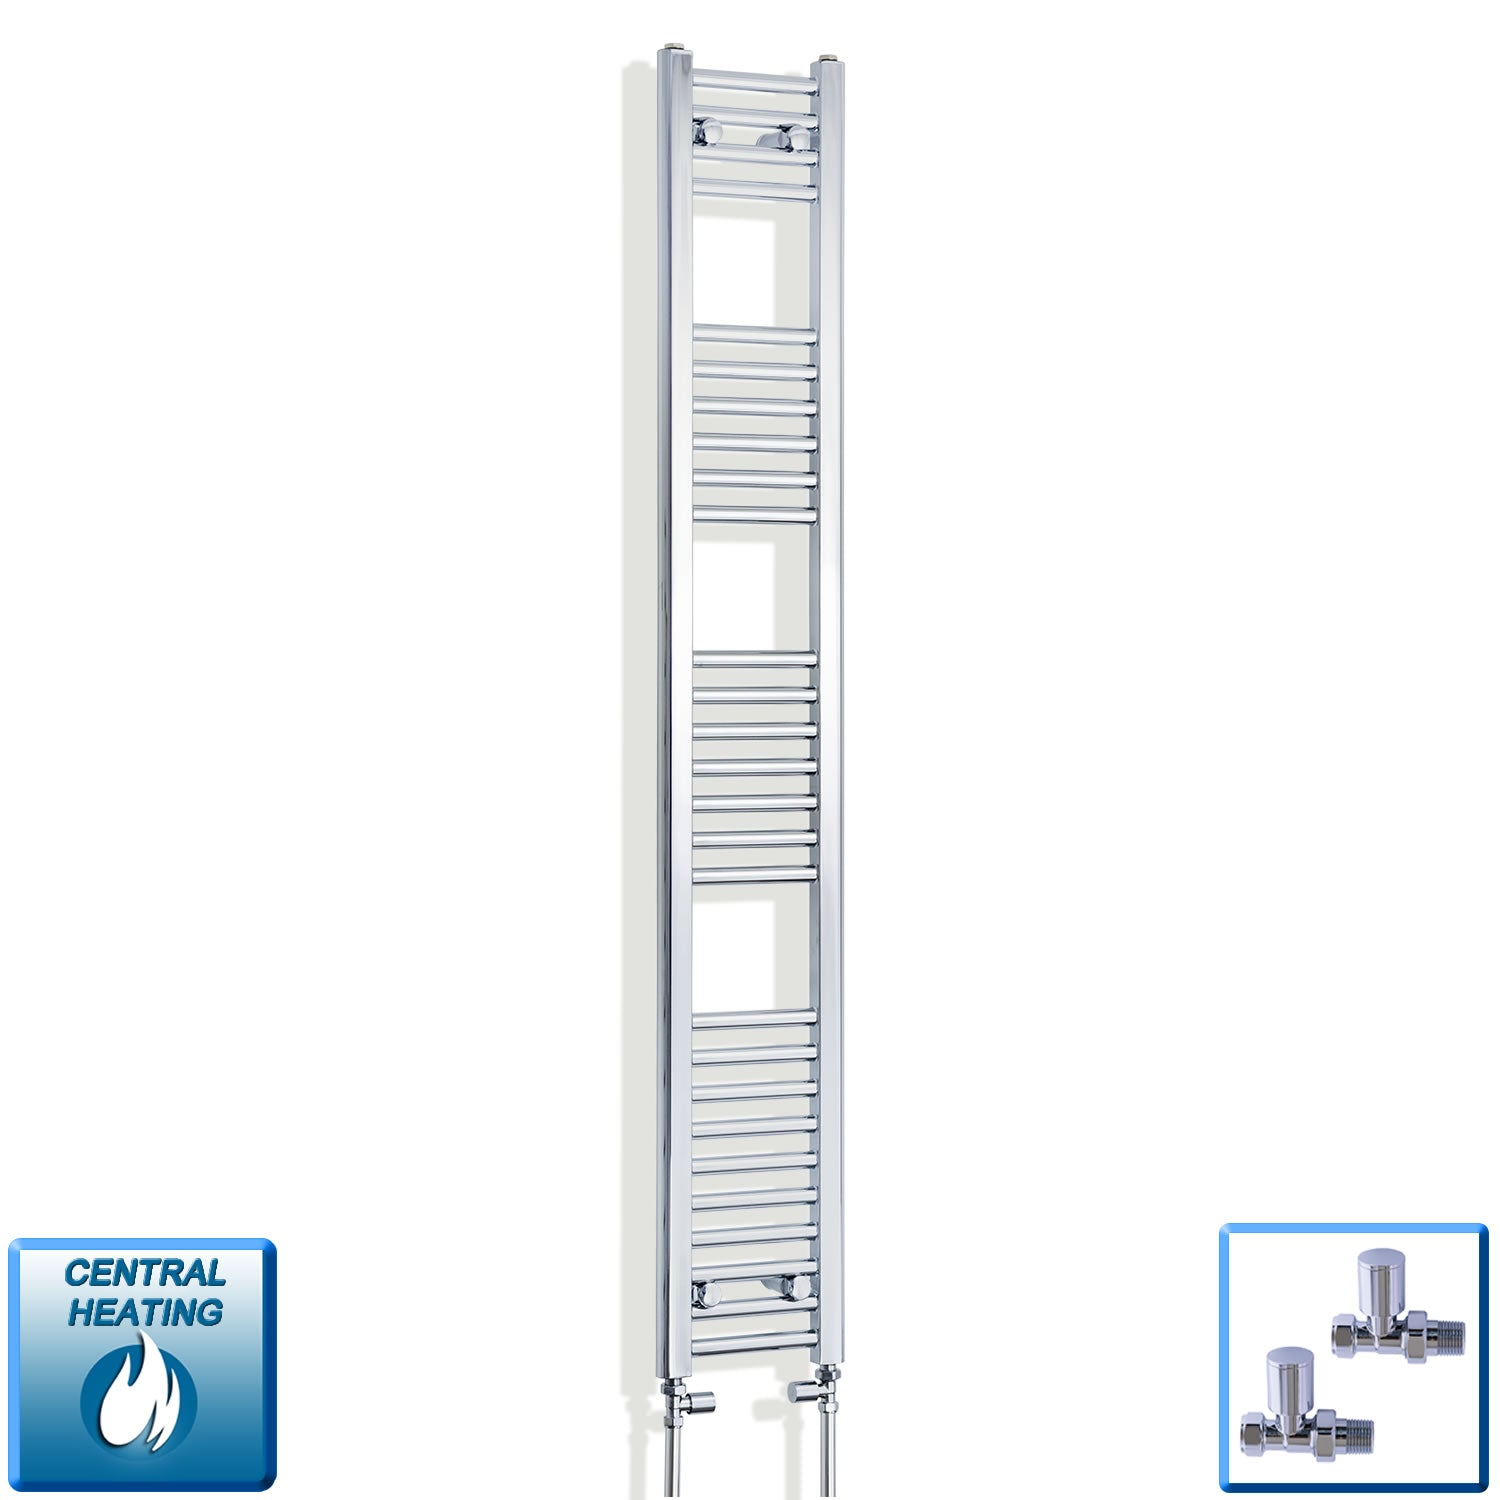 200mm Wide 1600mm High Flat Chrome Heated Towel Rail Radiator,With Straight Valve